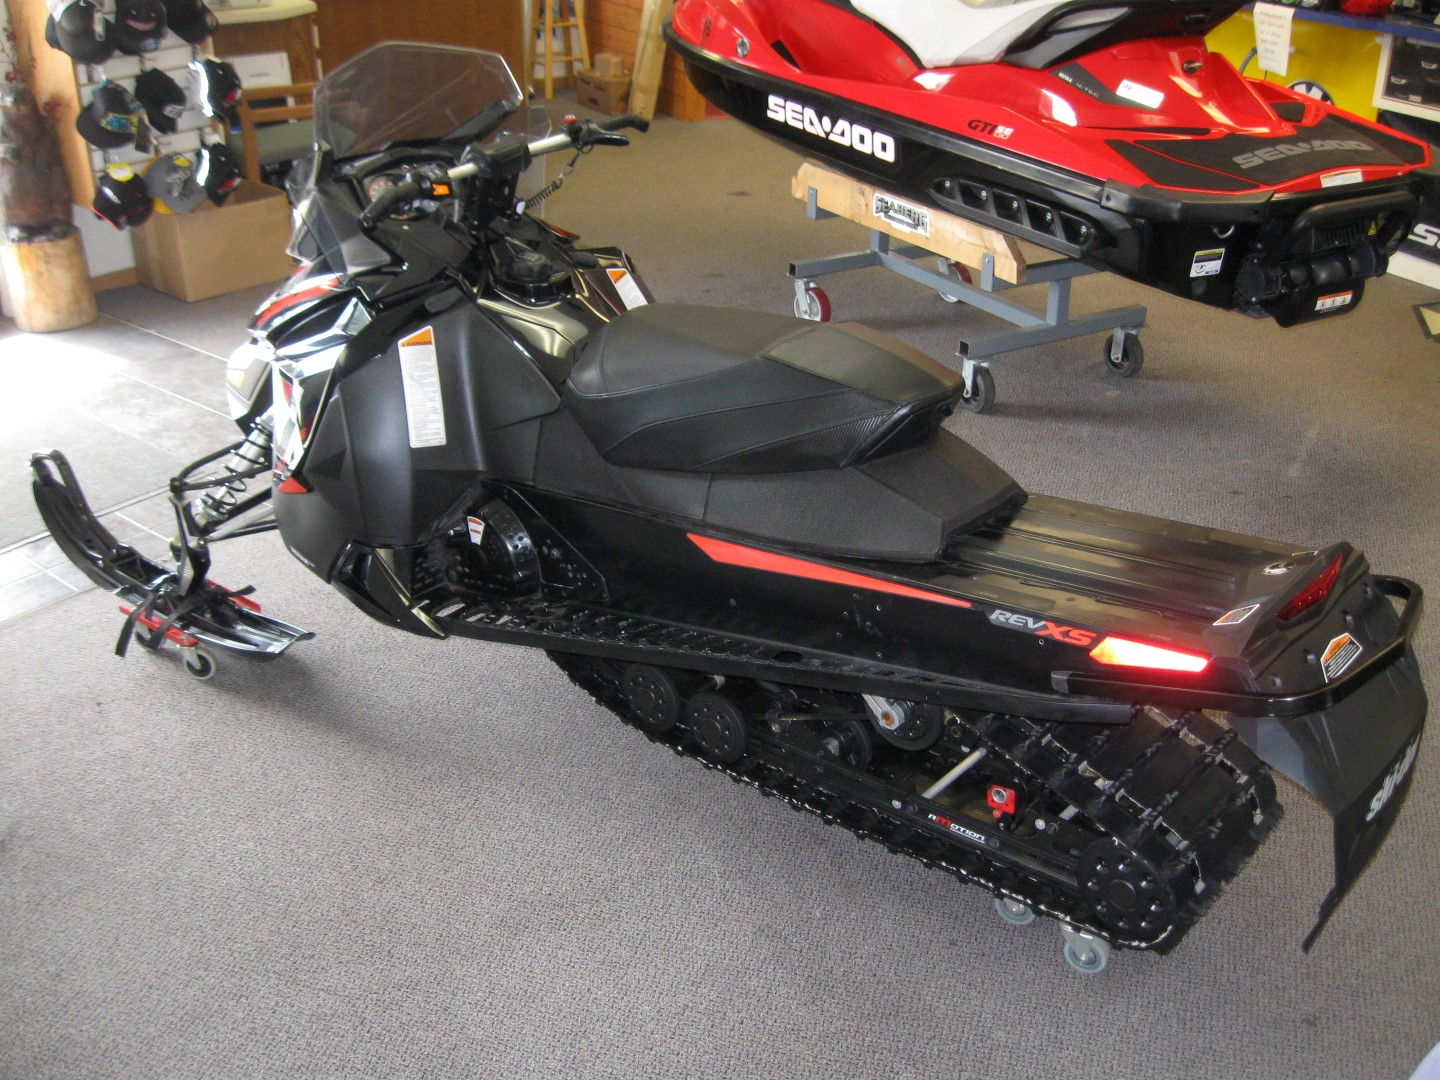 2015 Ski-Doo MXZ Renegade 600 E-Tec Snowmobile for sale eagan mn Seaberg Motorsports Crosslake MN rear left quarter